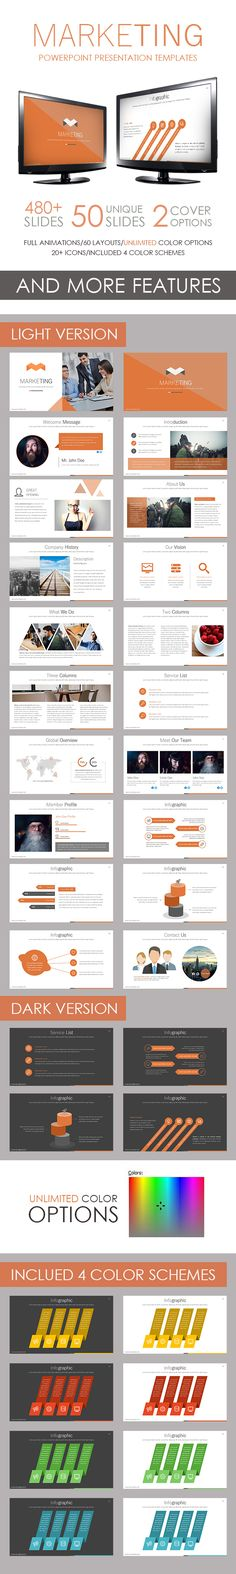 fountain pen (powerpoint templates) | fountain pens, fountain and, Modern powerpoint